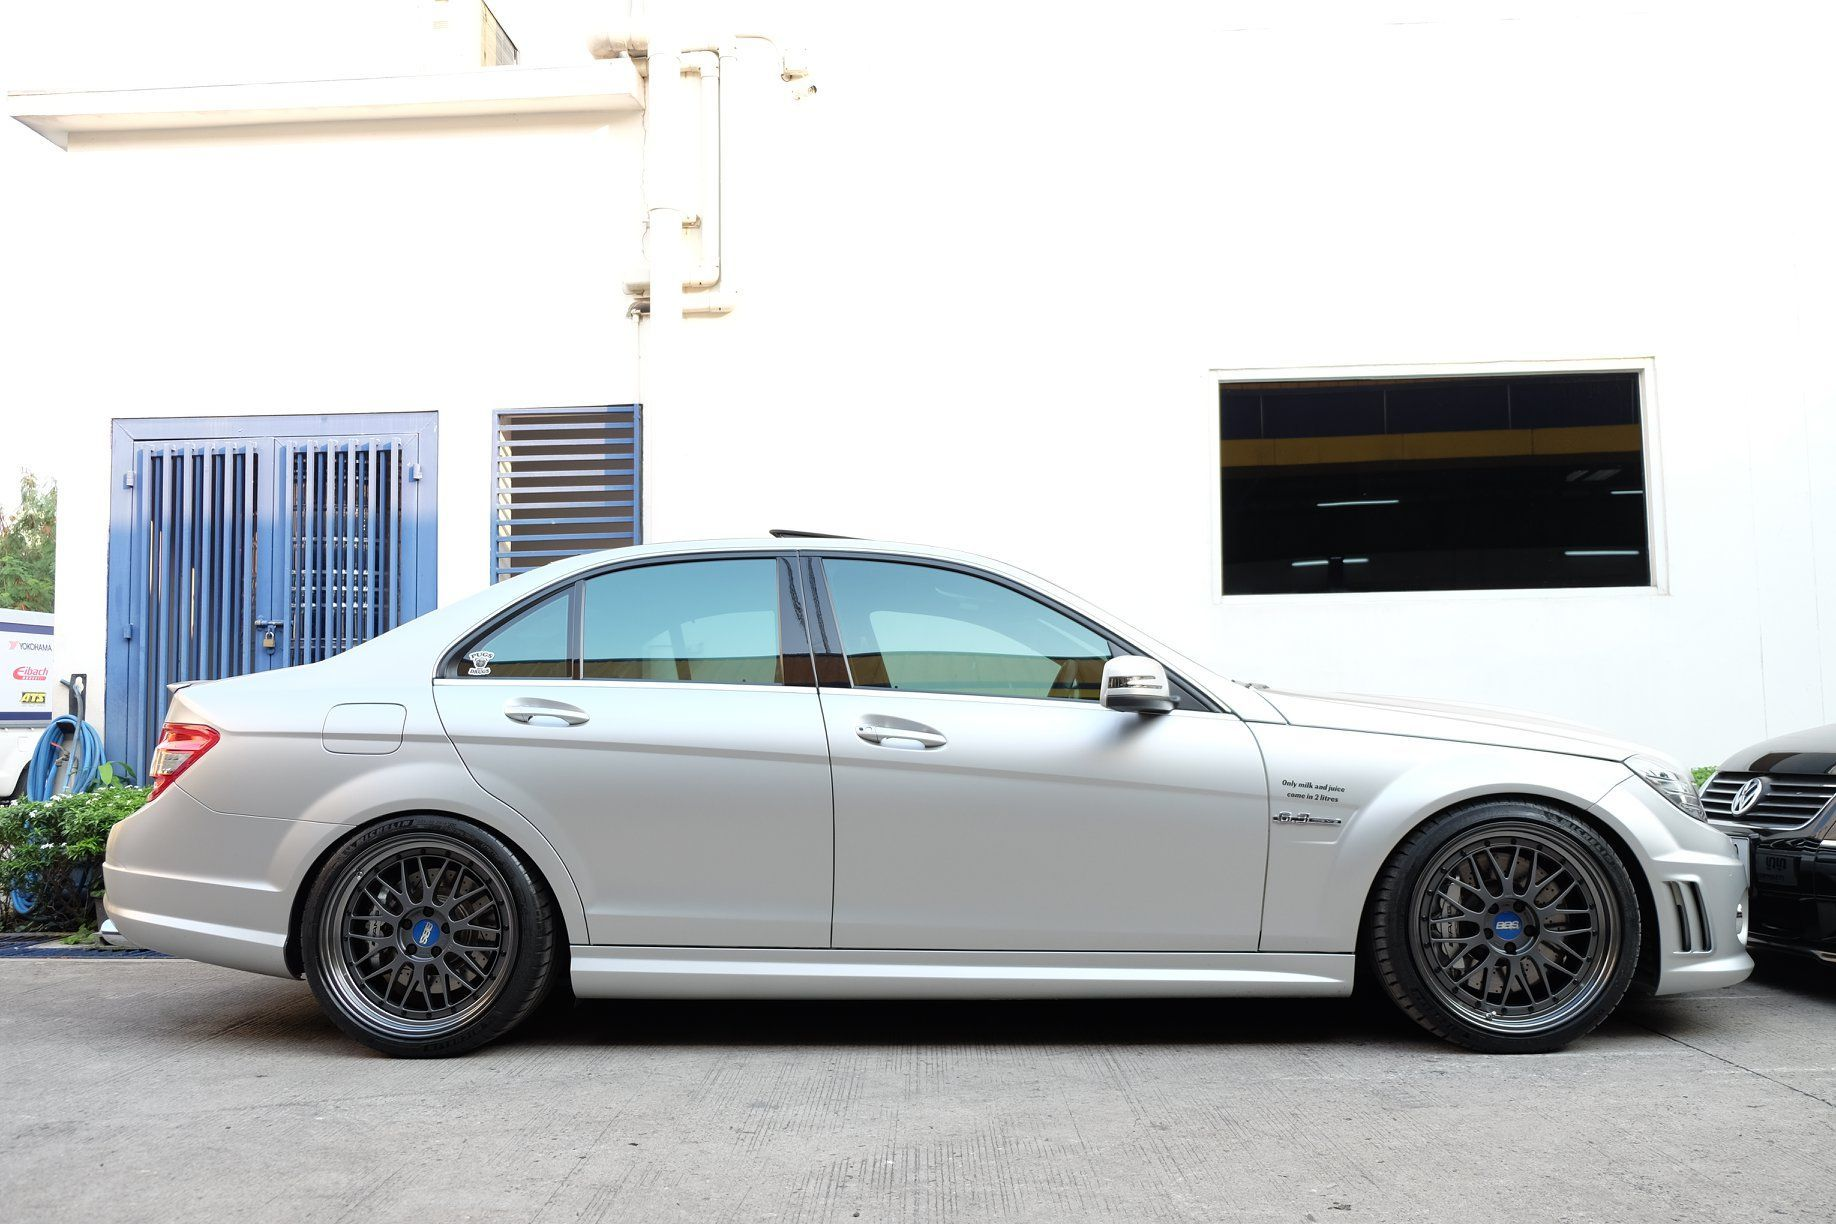 Mercedes Benz C63 Amg W204 Silver Bbs Lm With Images Mercedes